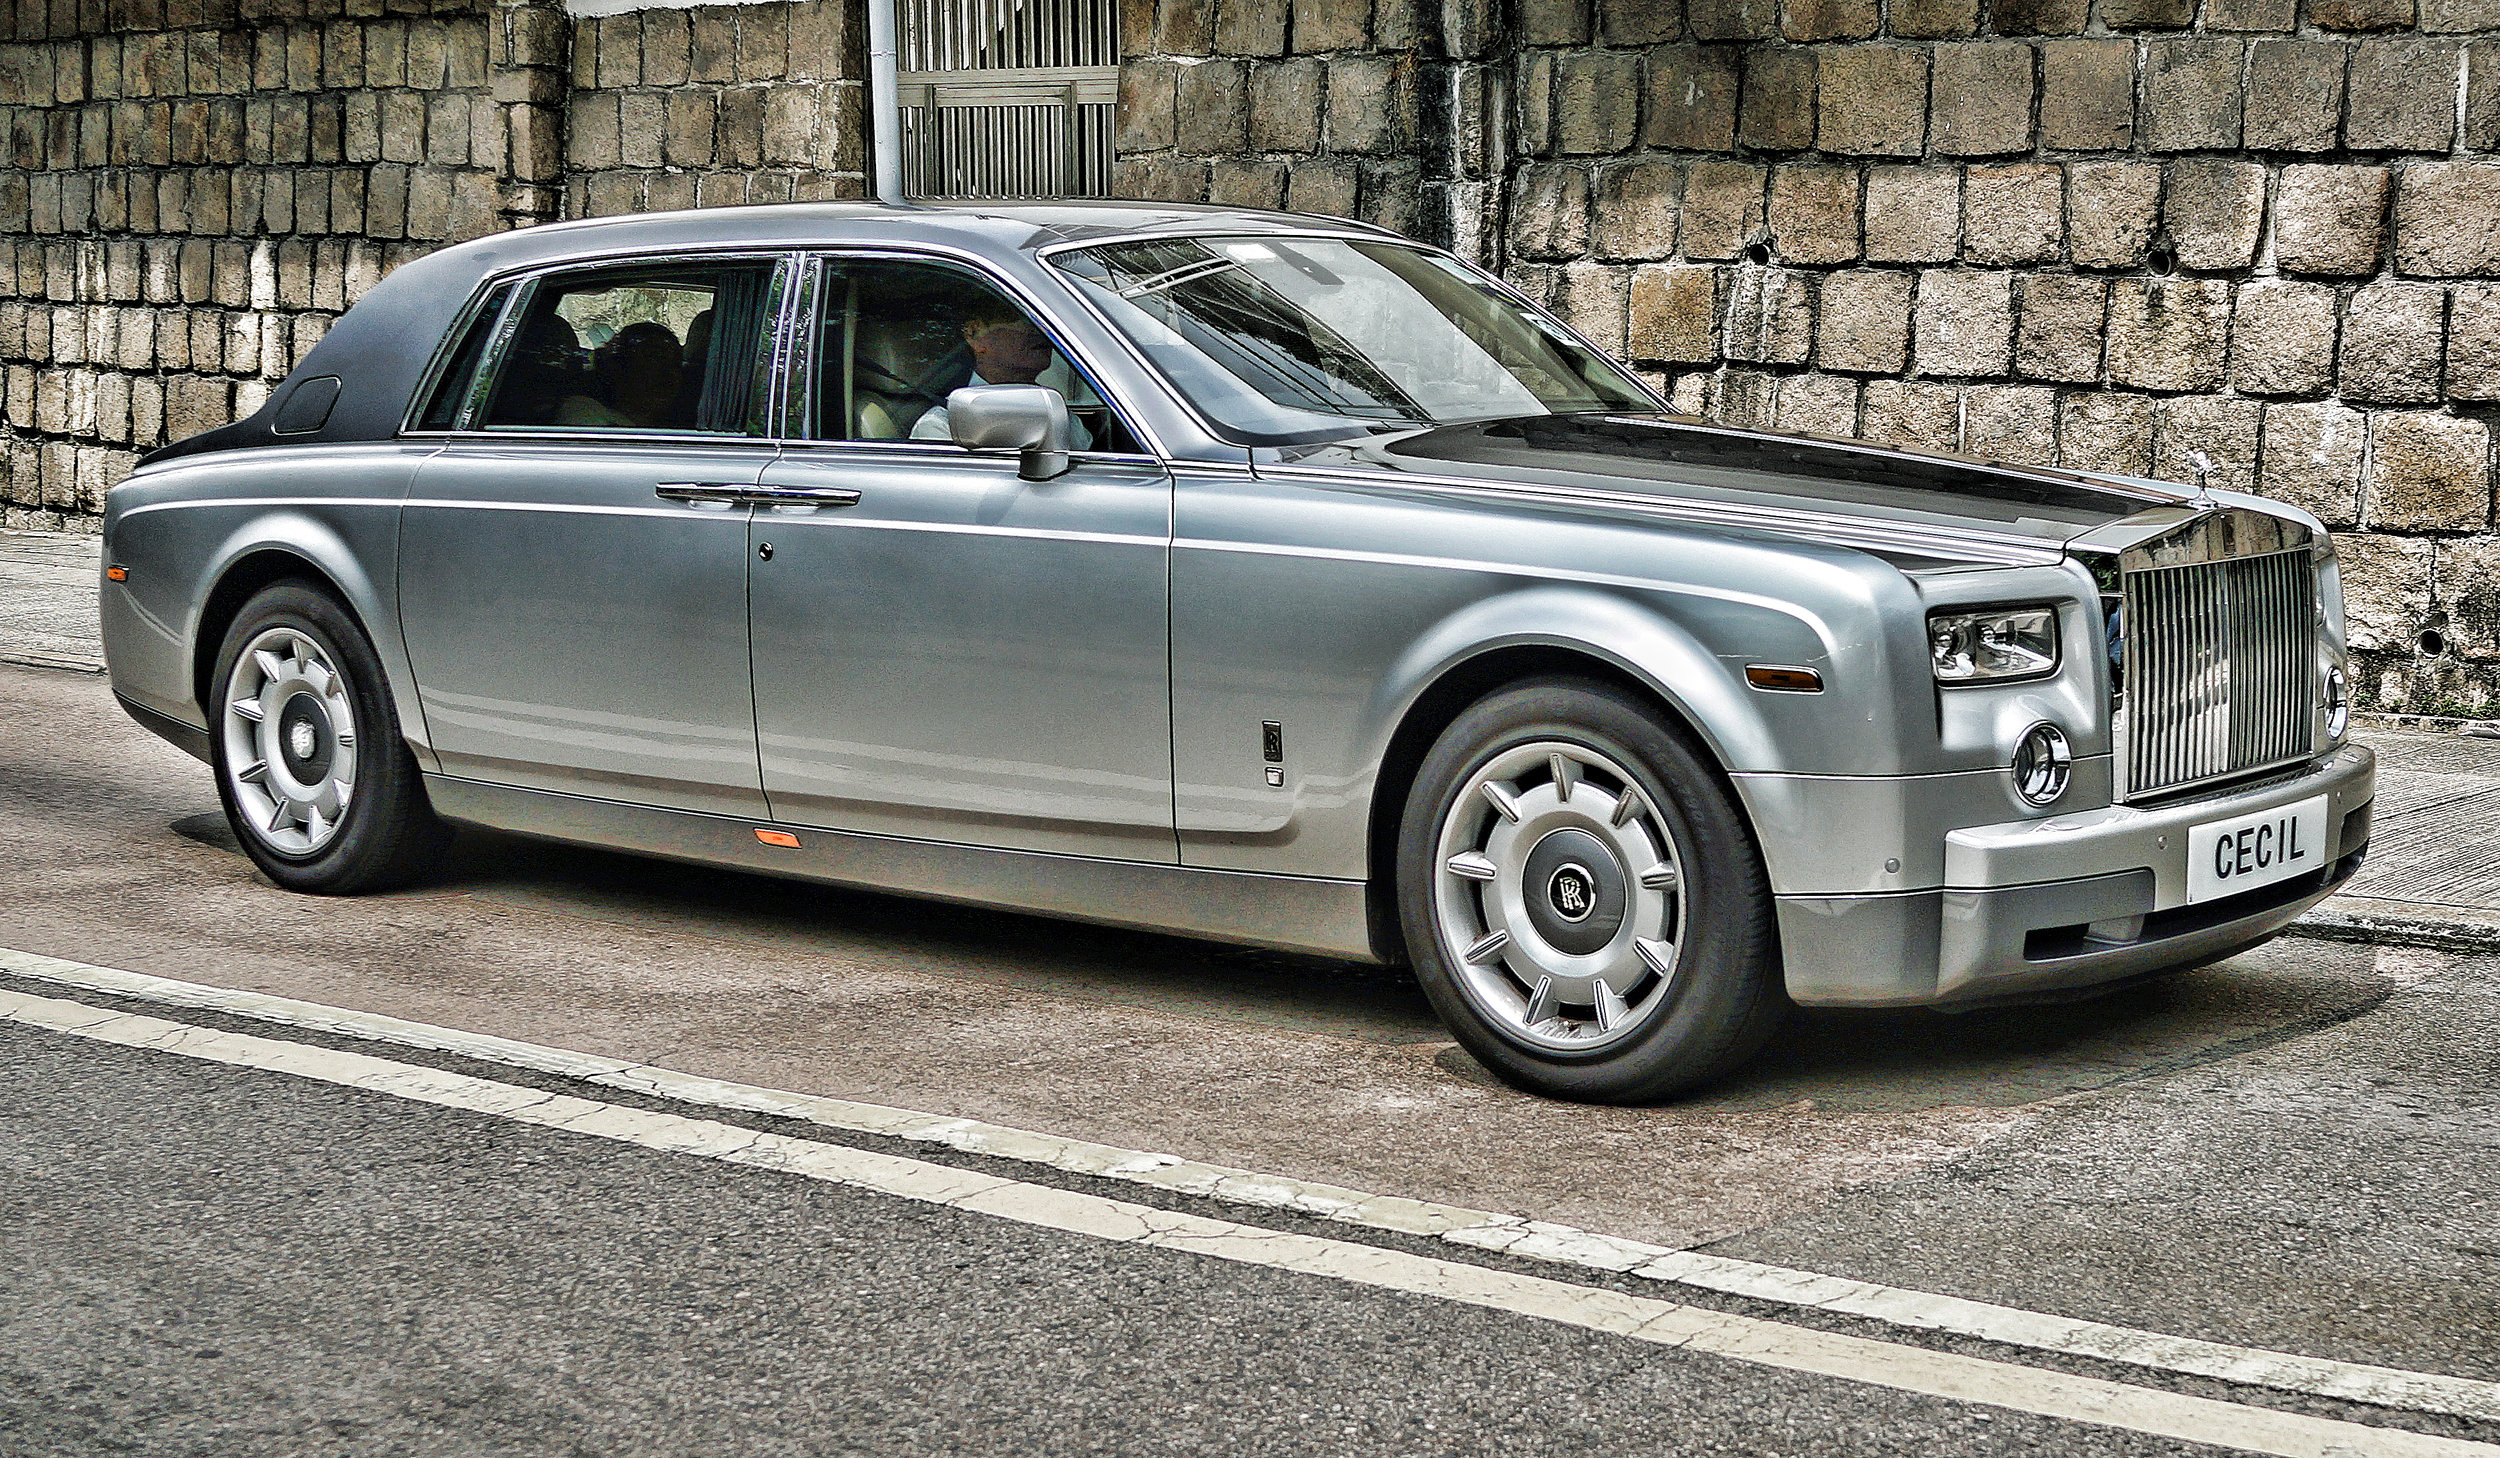 Our Cecil is a bit of lad really and a hit with the ladies and he does have a certain style.. one of his many cars is this rather lovely Rolls Royce Phantom